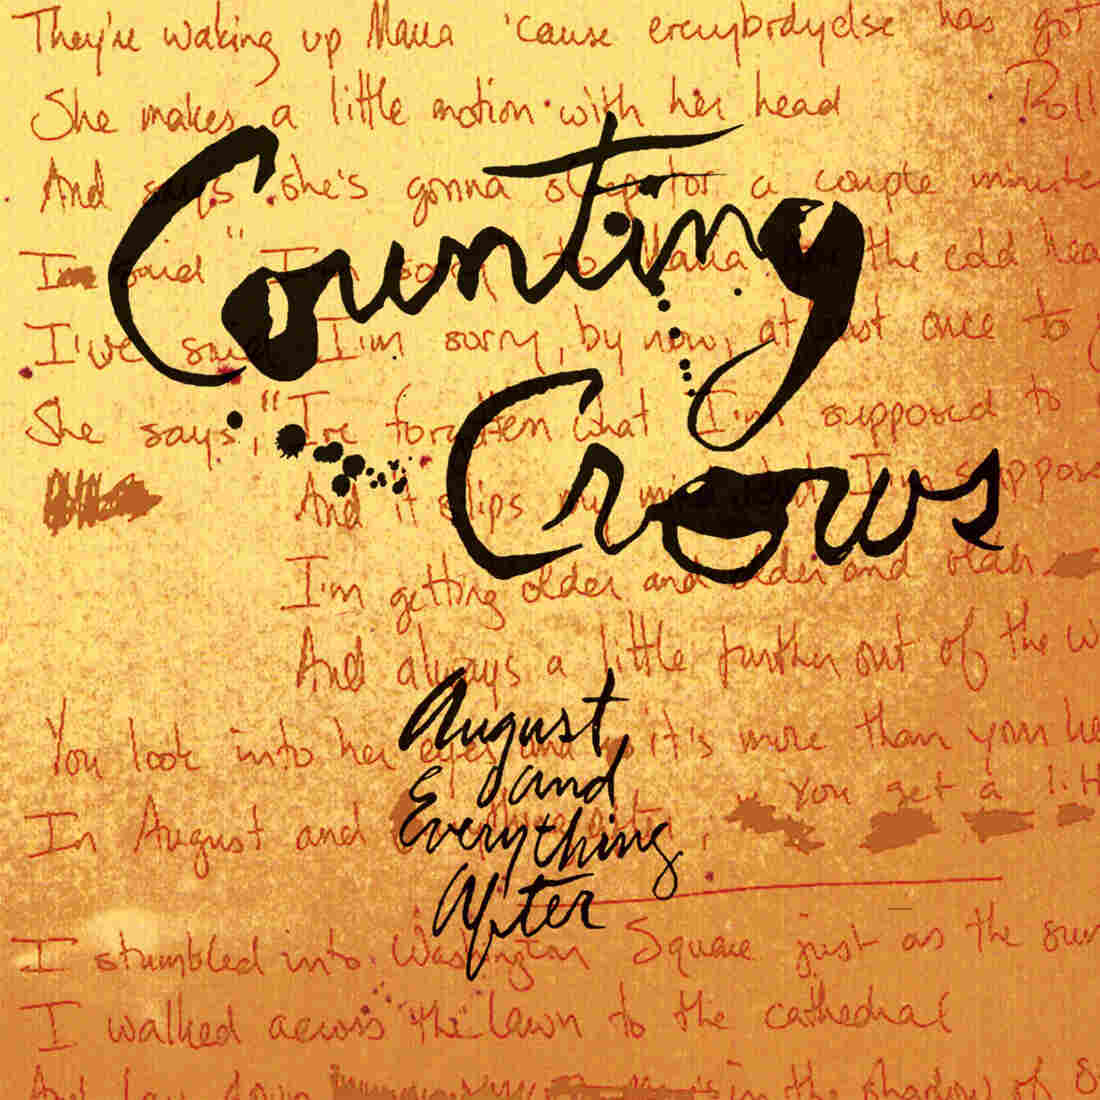 Counting Crows, August and Everything After